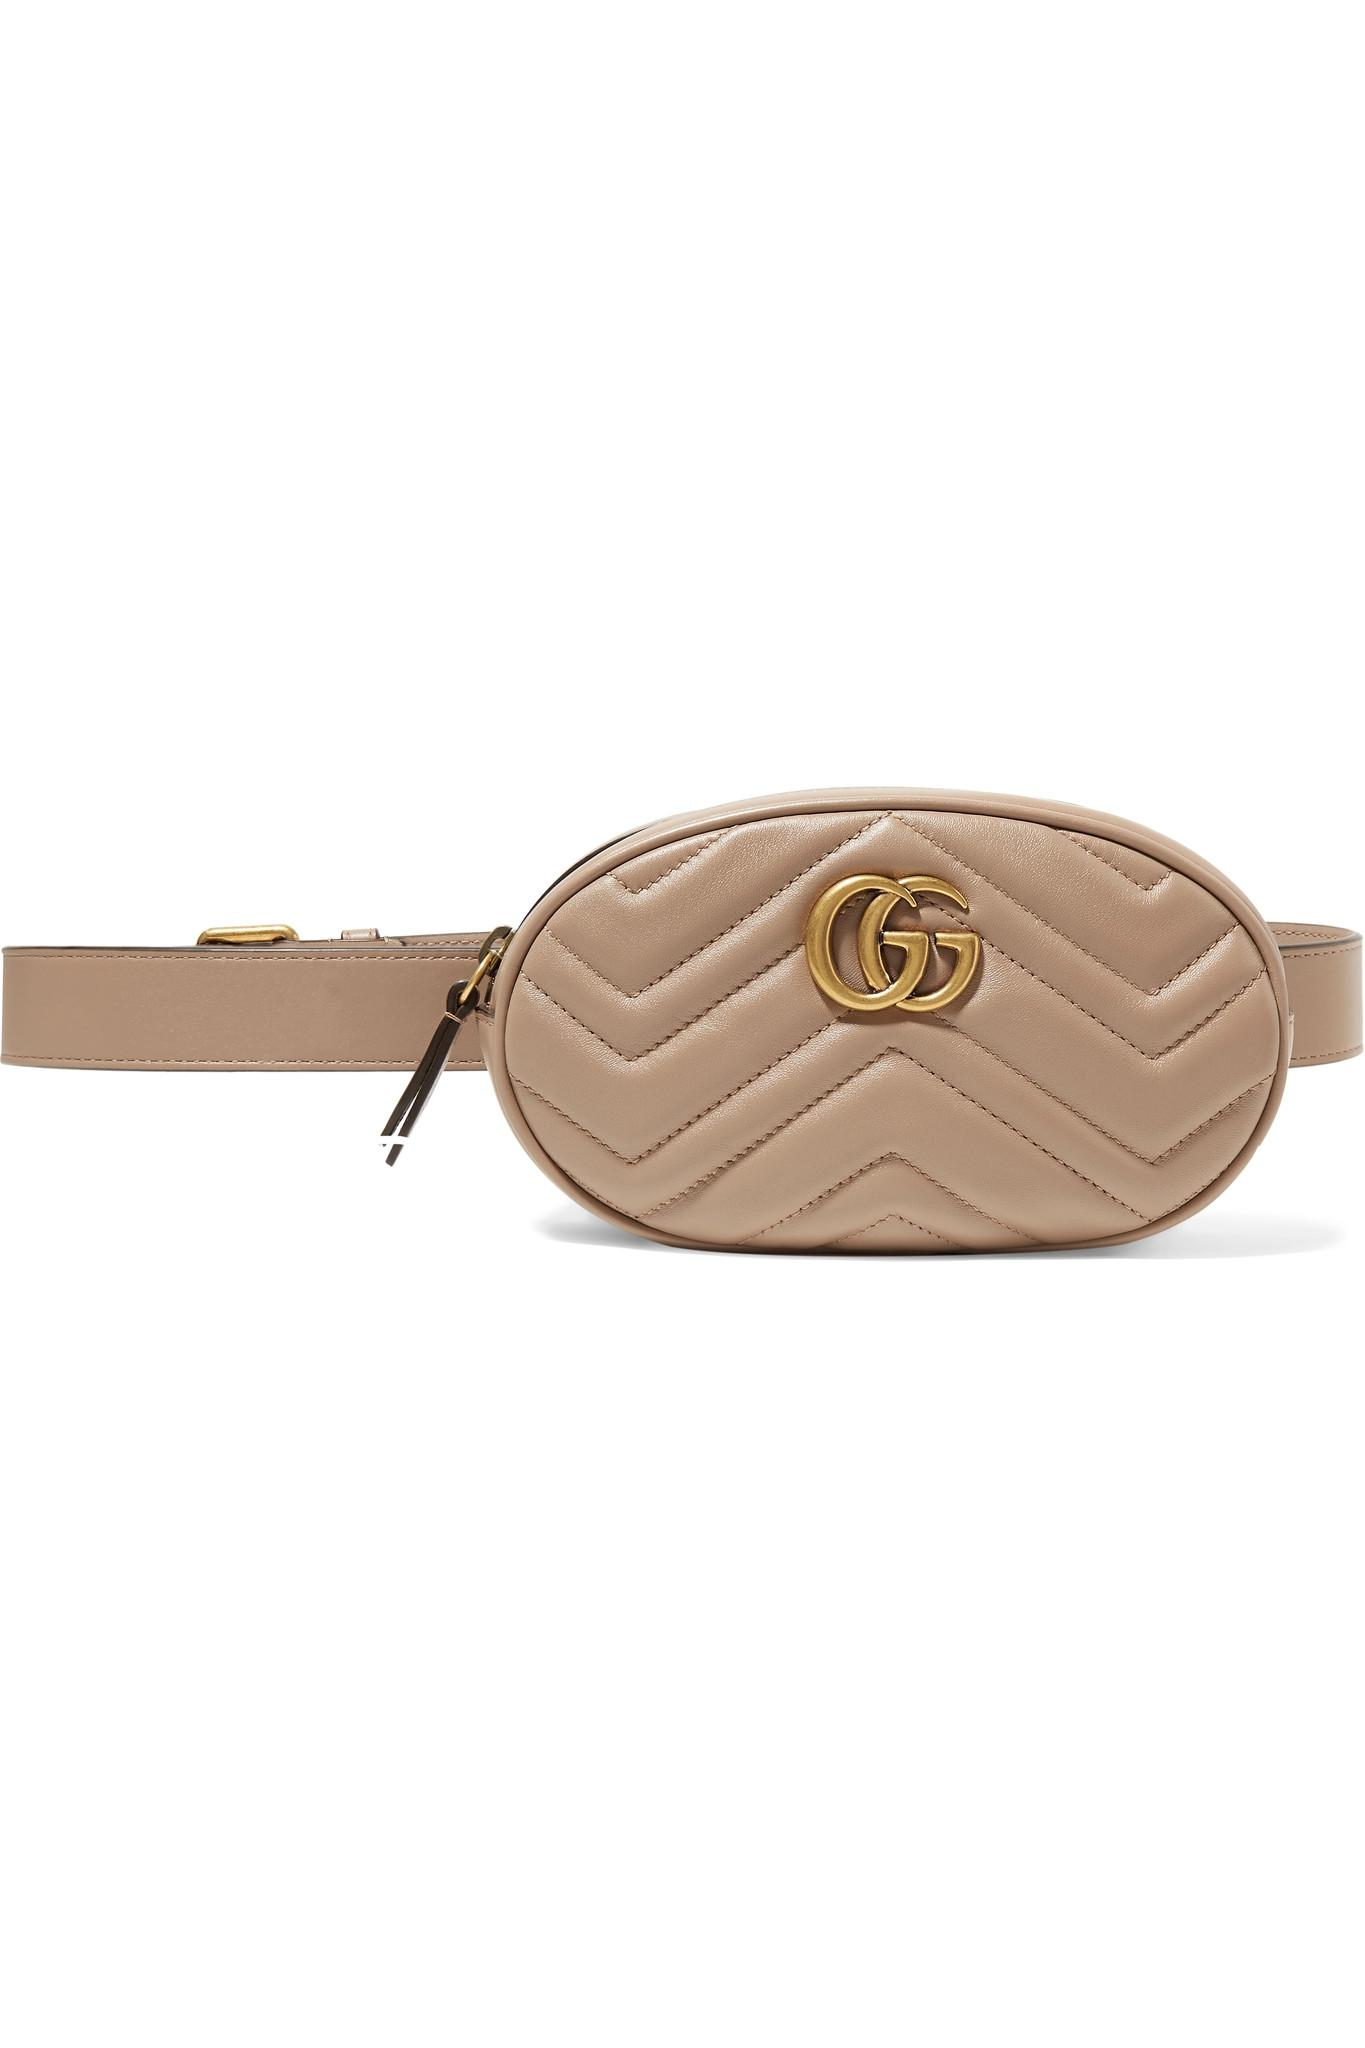 7c76c46d62b Gucci. Women s Gg Marmont Quilted Leather Belt Bag